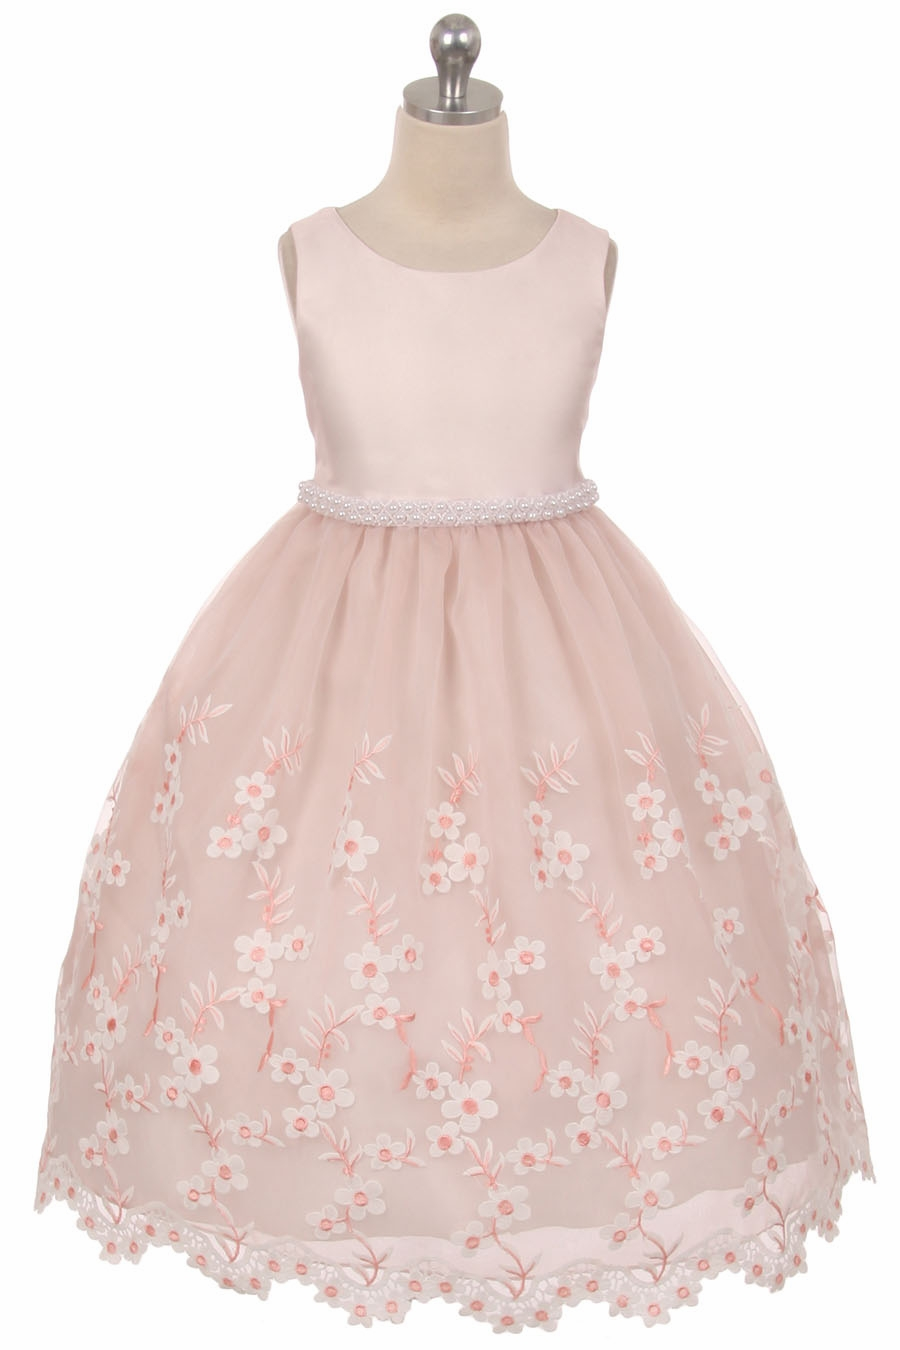 Dusty Rose Embroidered Floral Dress W Pearl Waistband